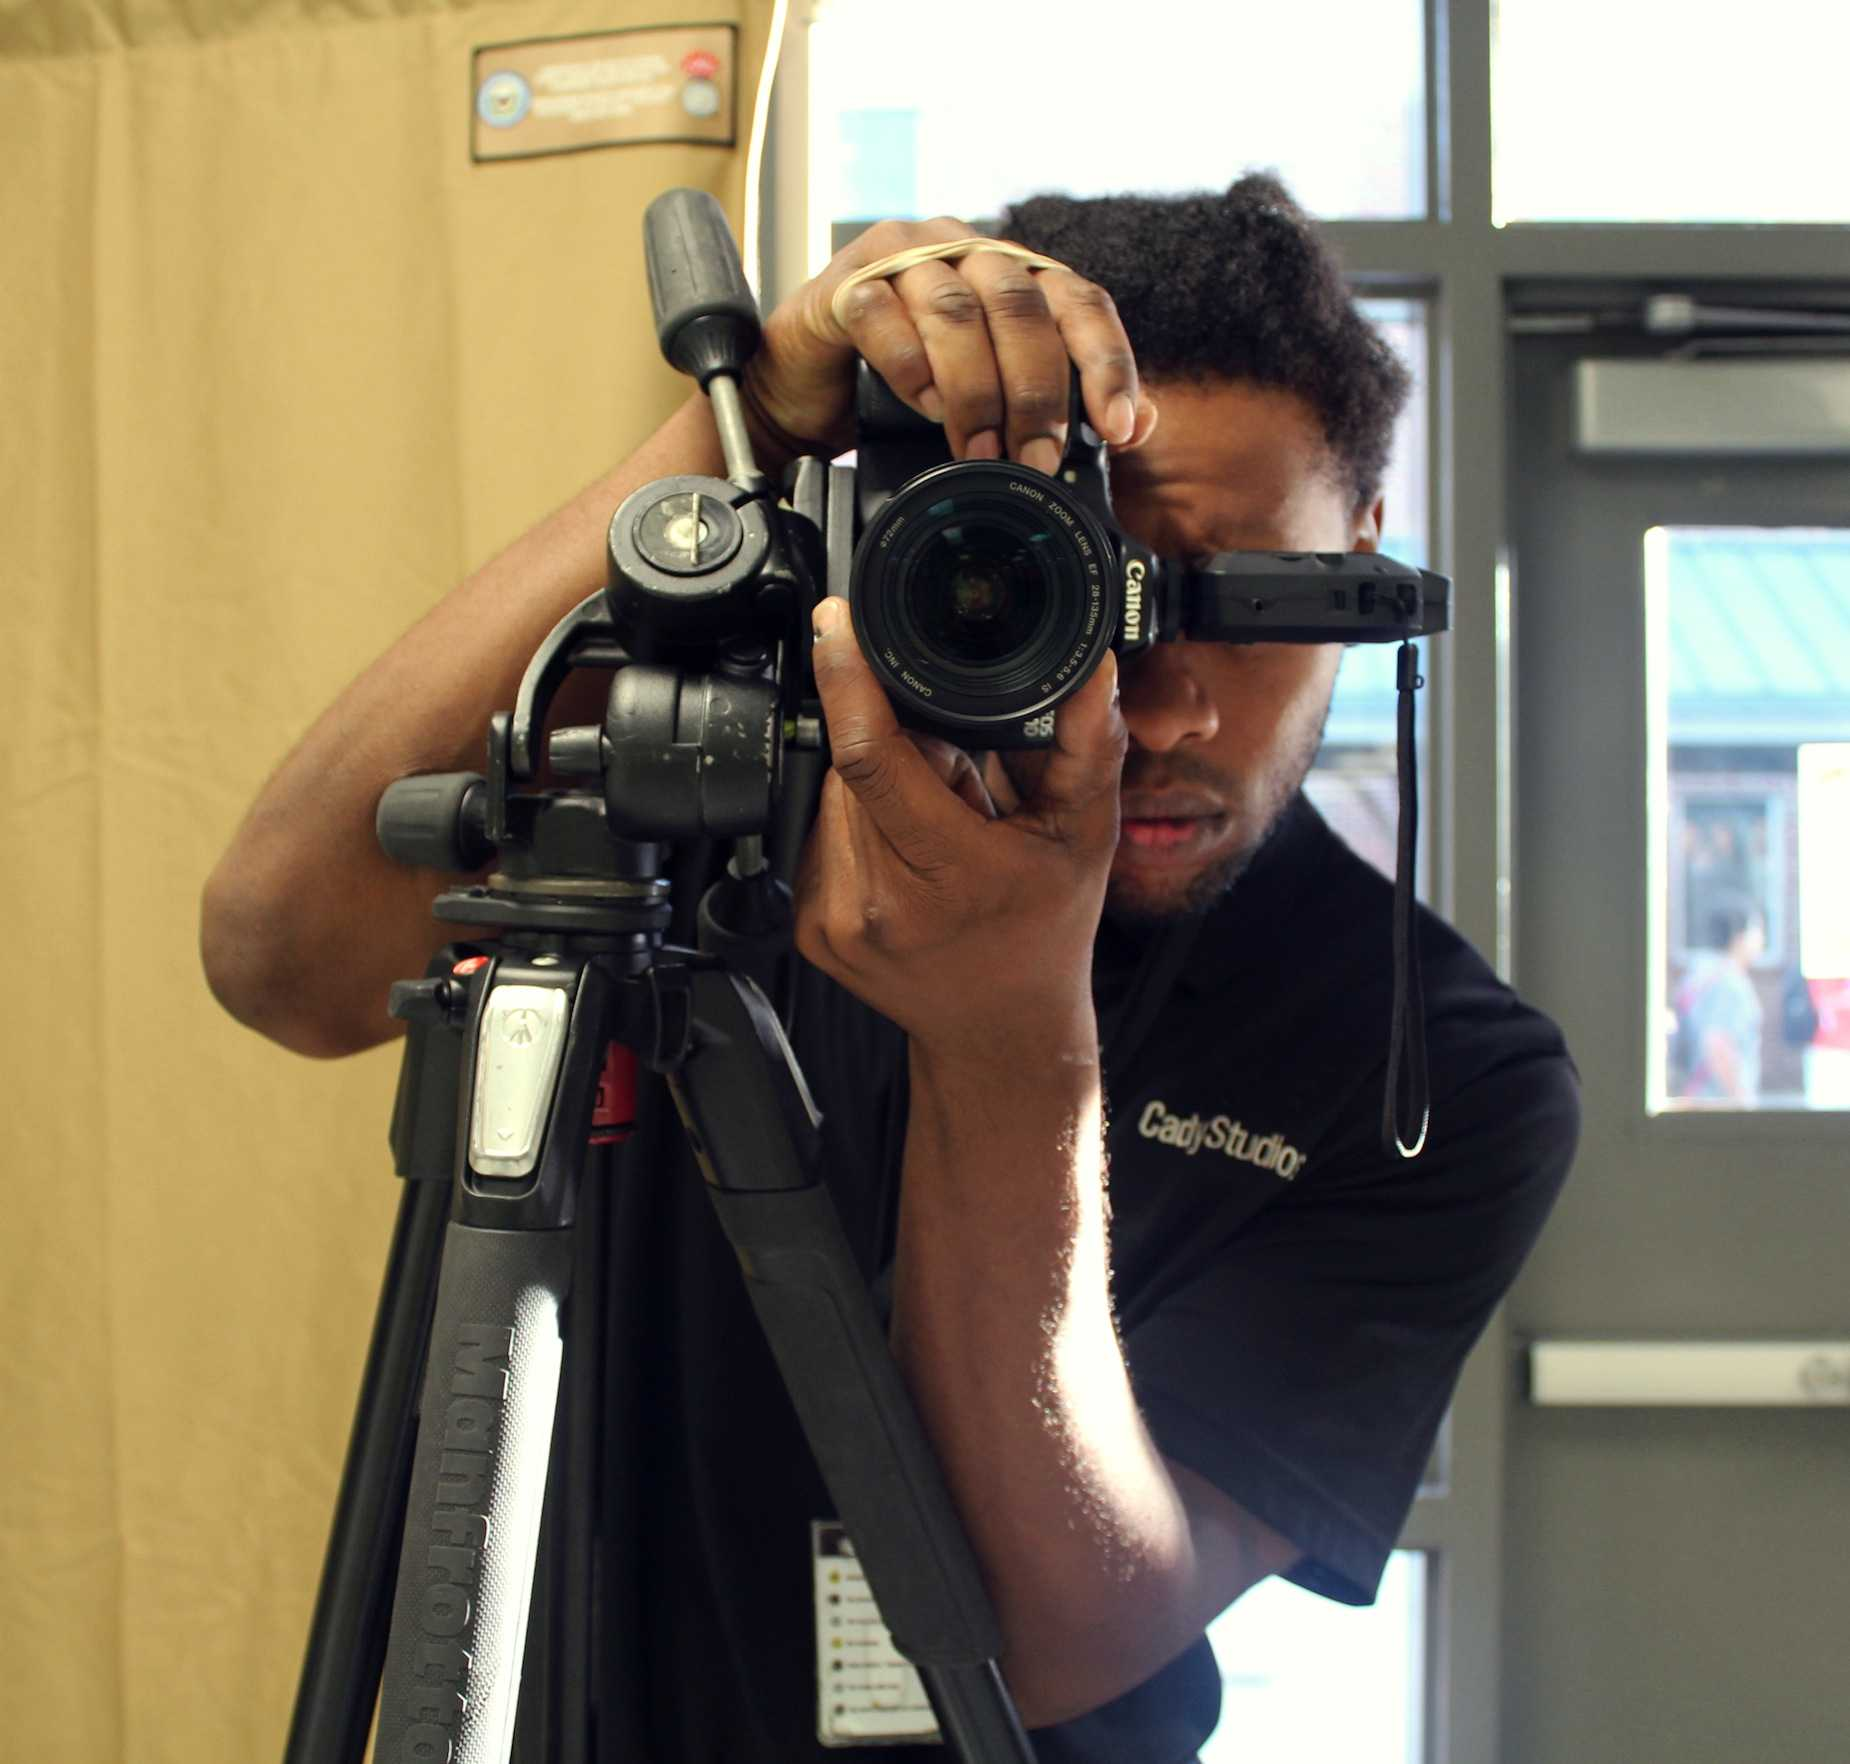 While most students stand in front of the camera for what feels like a fleeting moment, photographers must spend a lot of time taking the perfect photo. While their vague hand signals convey how students should angle their heads and bodies, they actually visualize the photo to ensure that it comes out exquisitely.